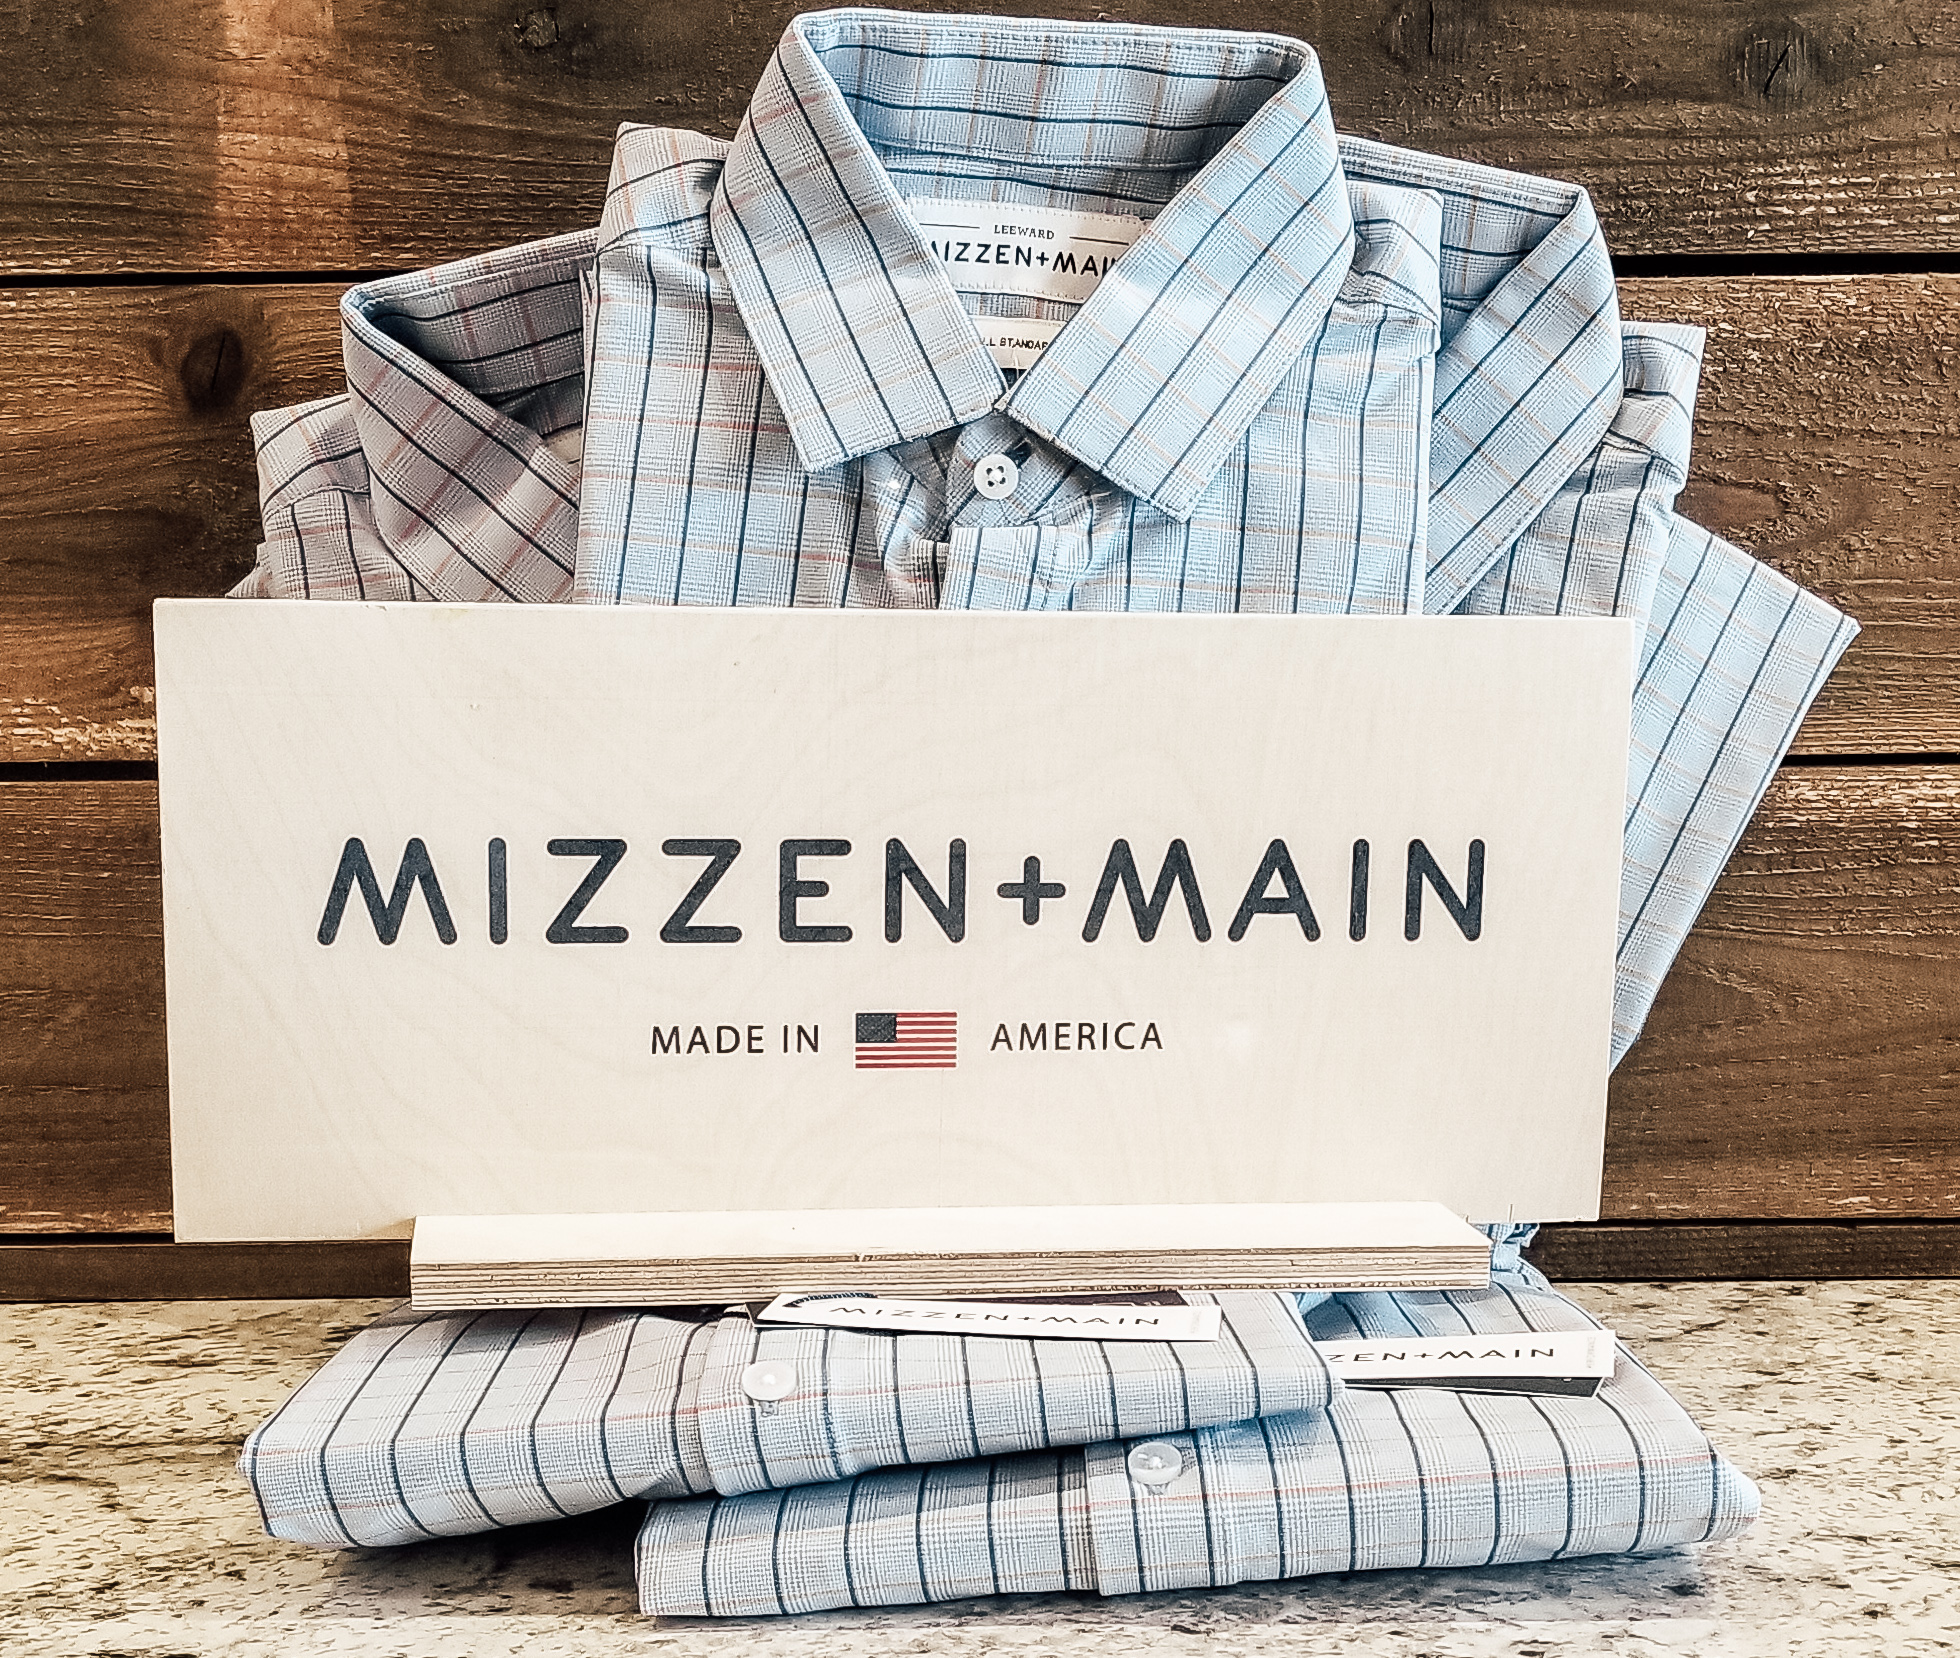 New Mizzen + Main colors and patterns are arriving for the new season.